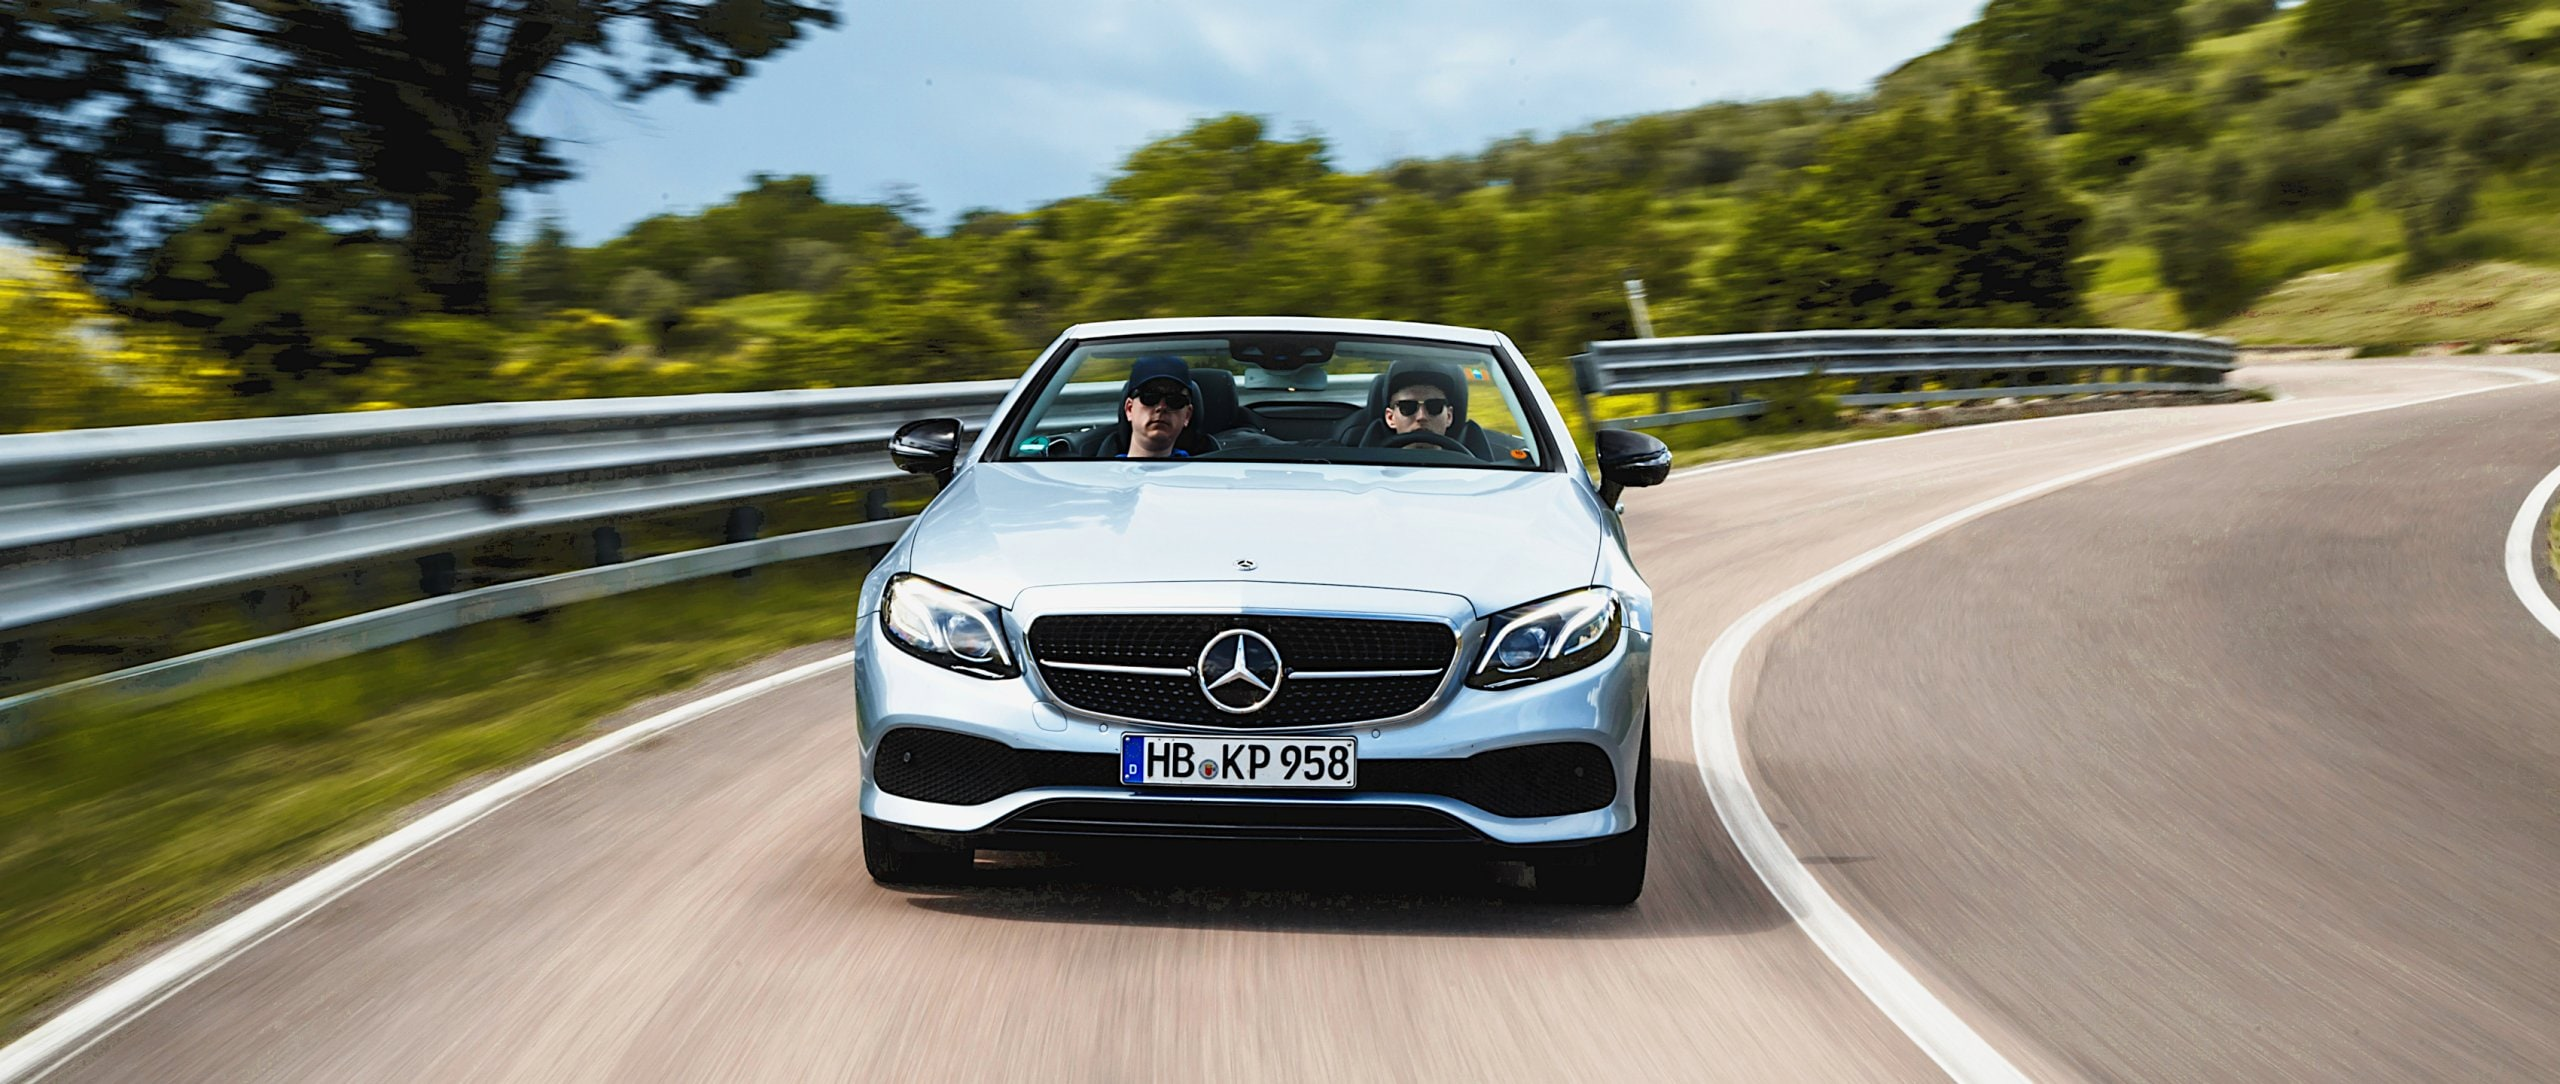 In this episode of #MBvideocar Tom Wolf takes the Mercedes-Benz E-Class Cabriolet (A 238) on a road trip through Tuscany.